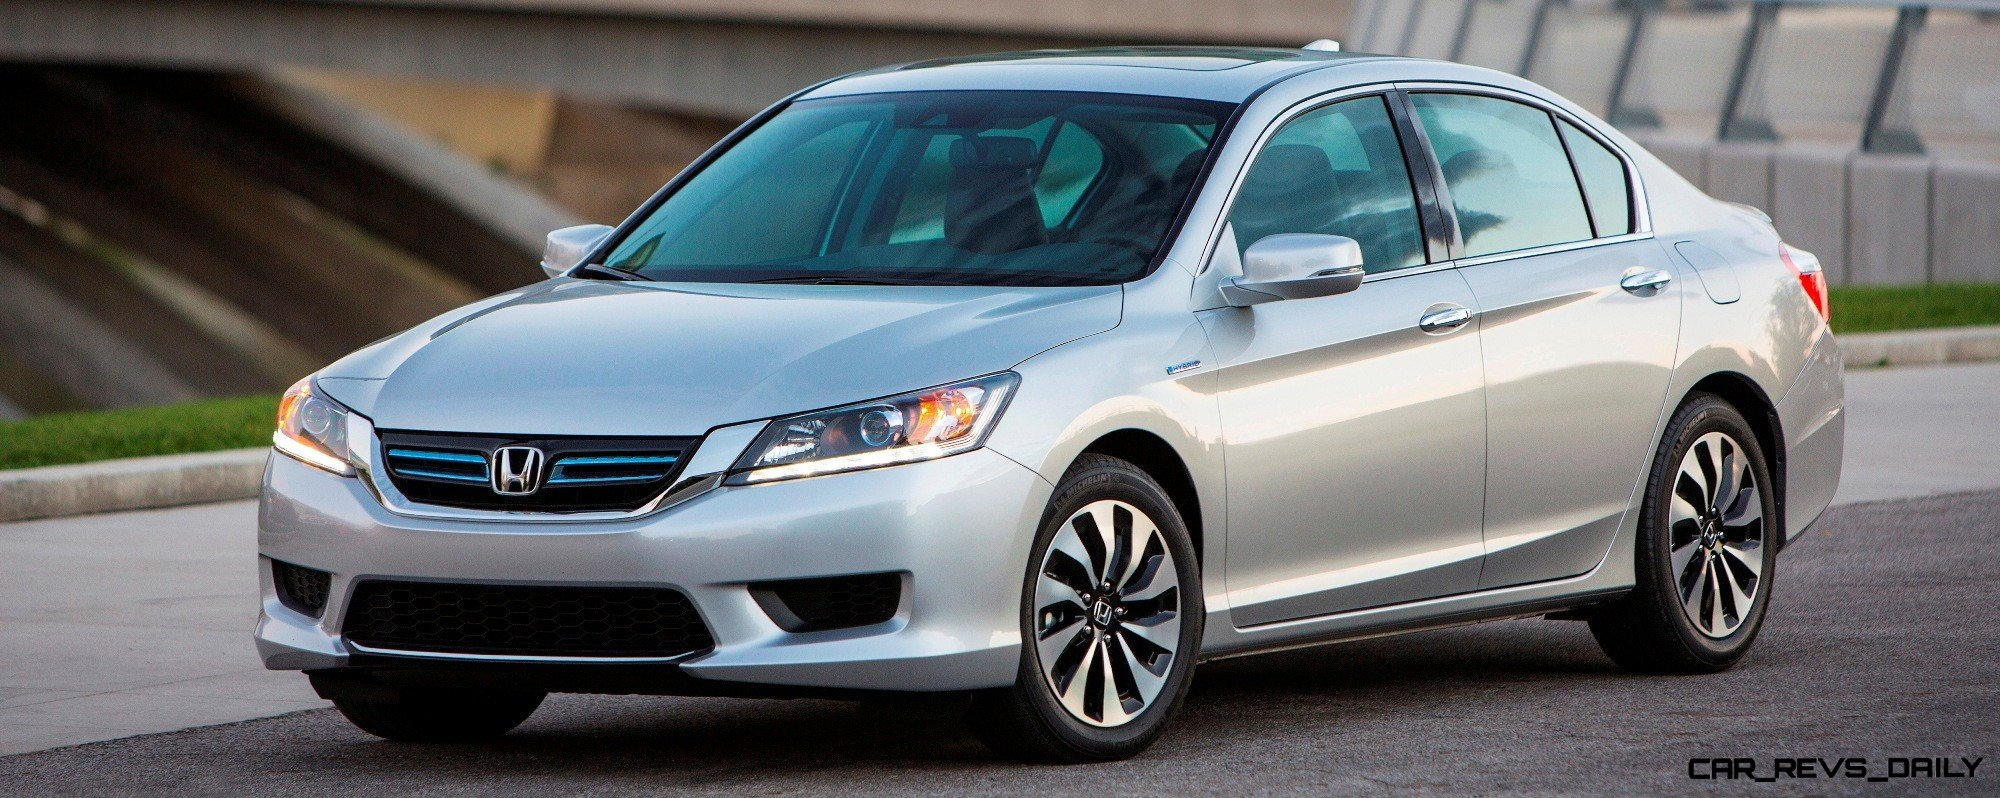 honda accord touring vs ex l hybrid autos post. Black Bedroom Furniture Sets. Home Design Ideas